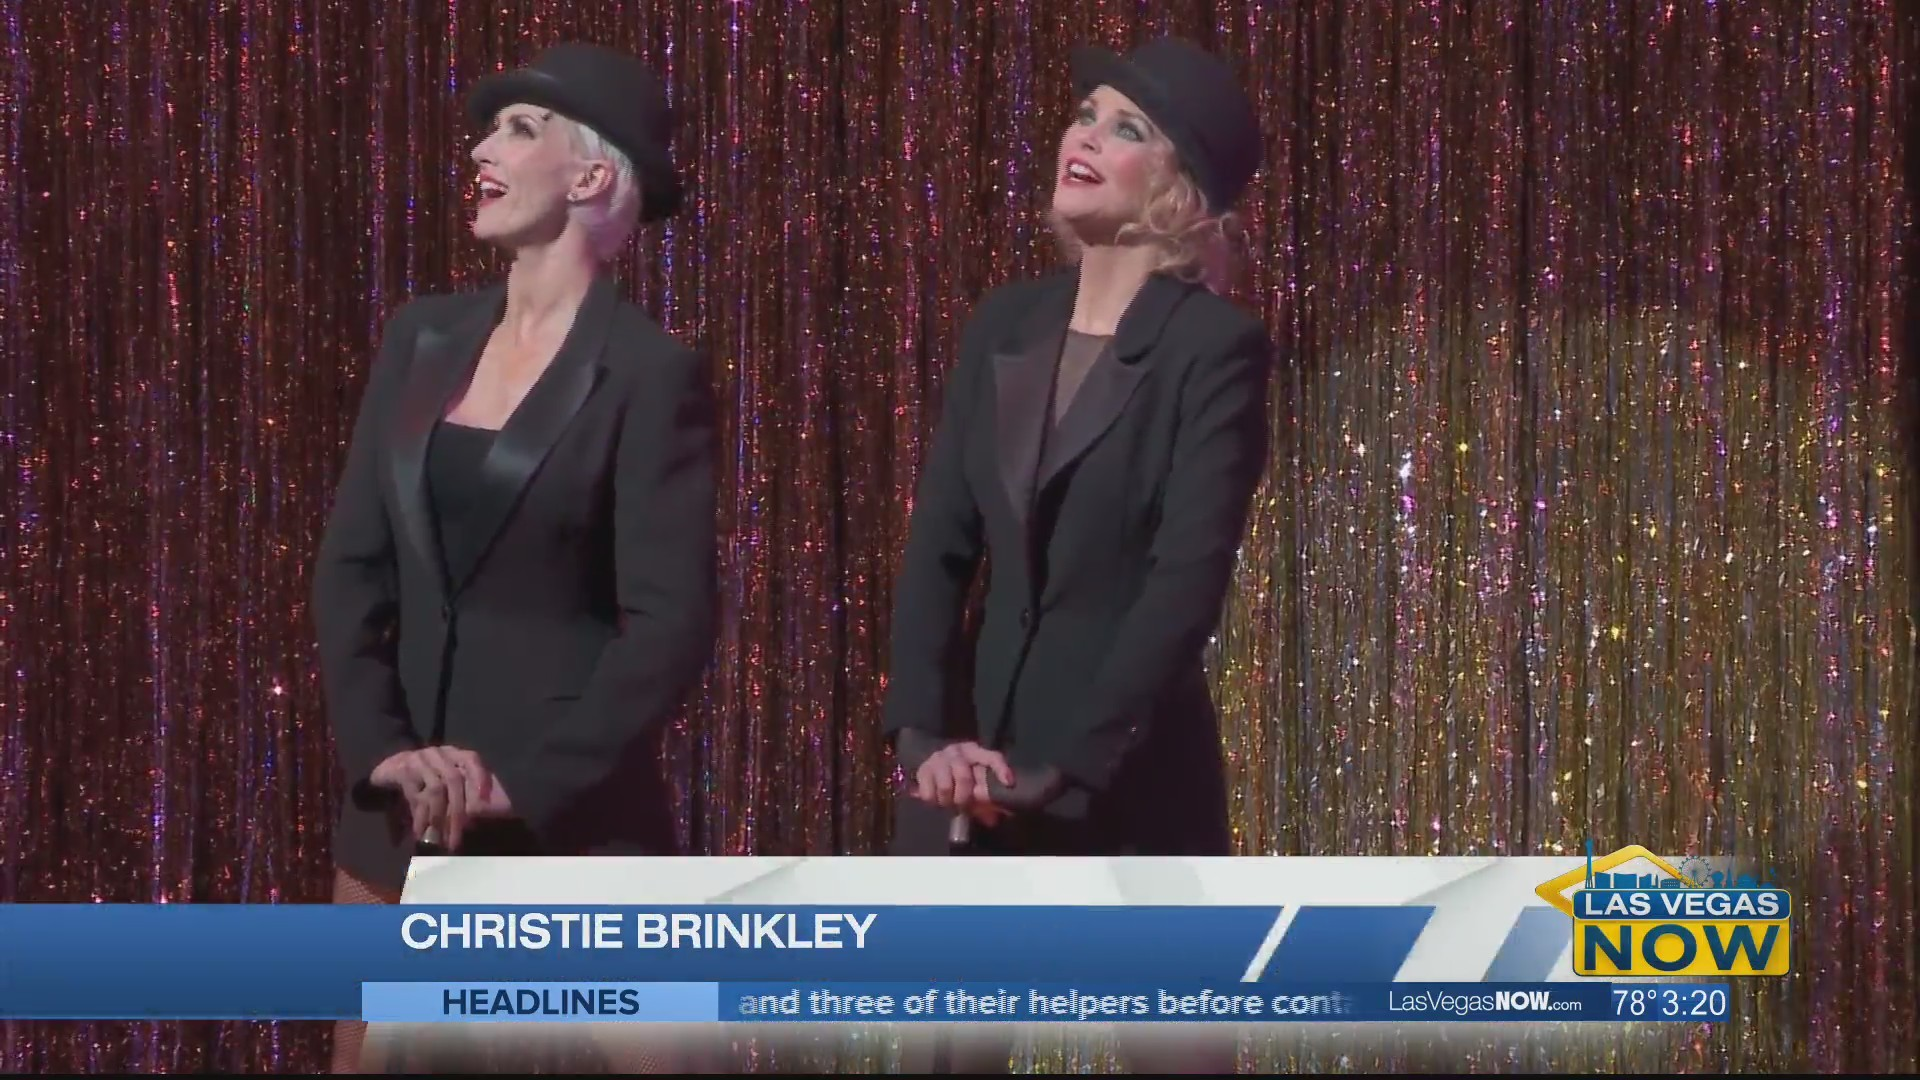 Christie Brinkley is starring in Chicago the musical